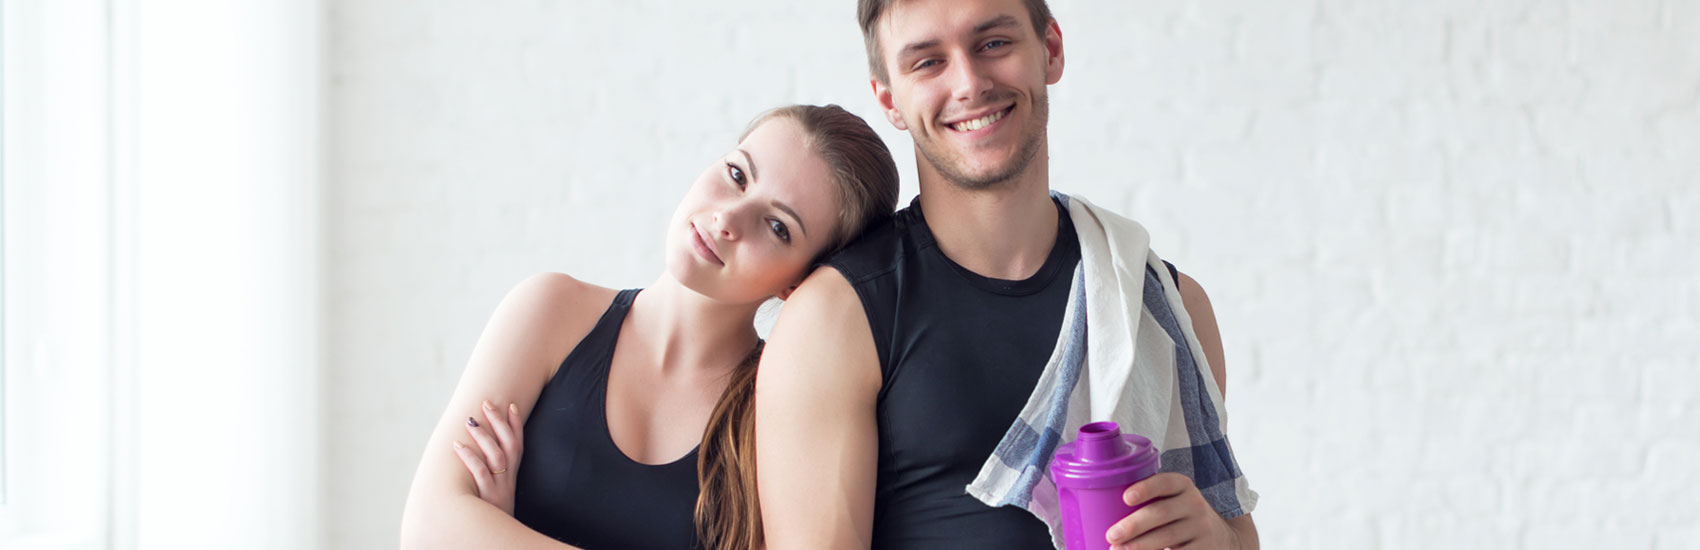 Protein Shakes- Couple Fitness